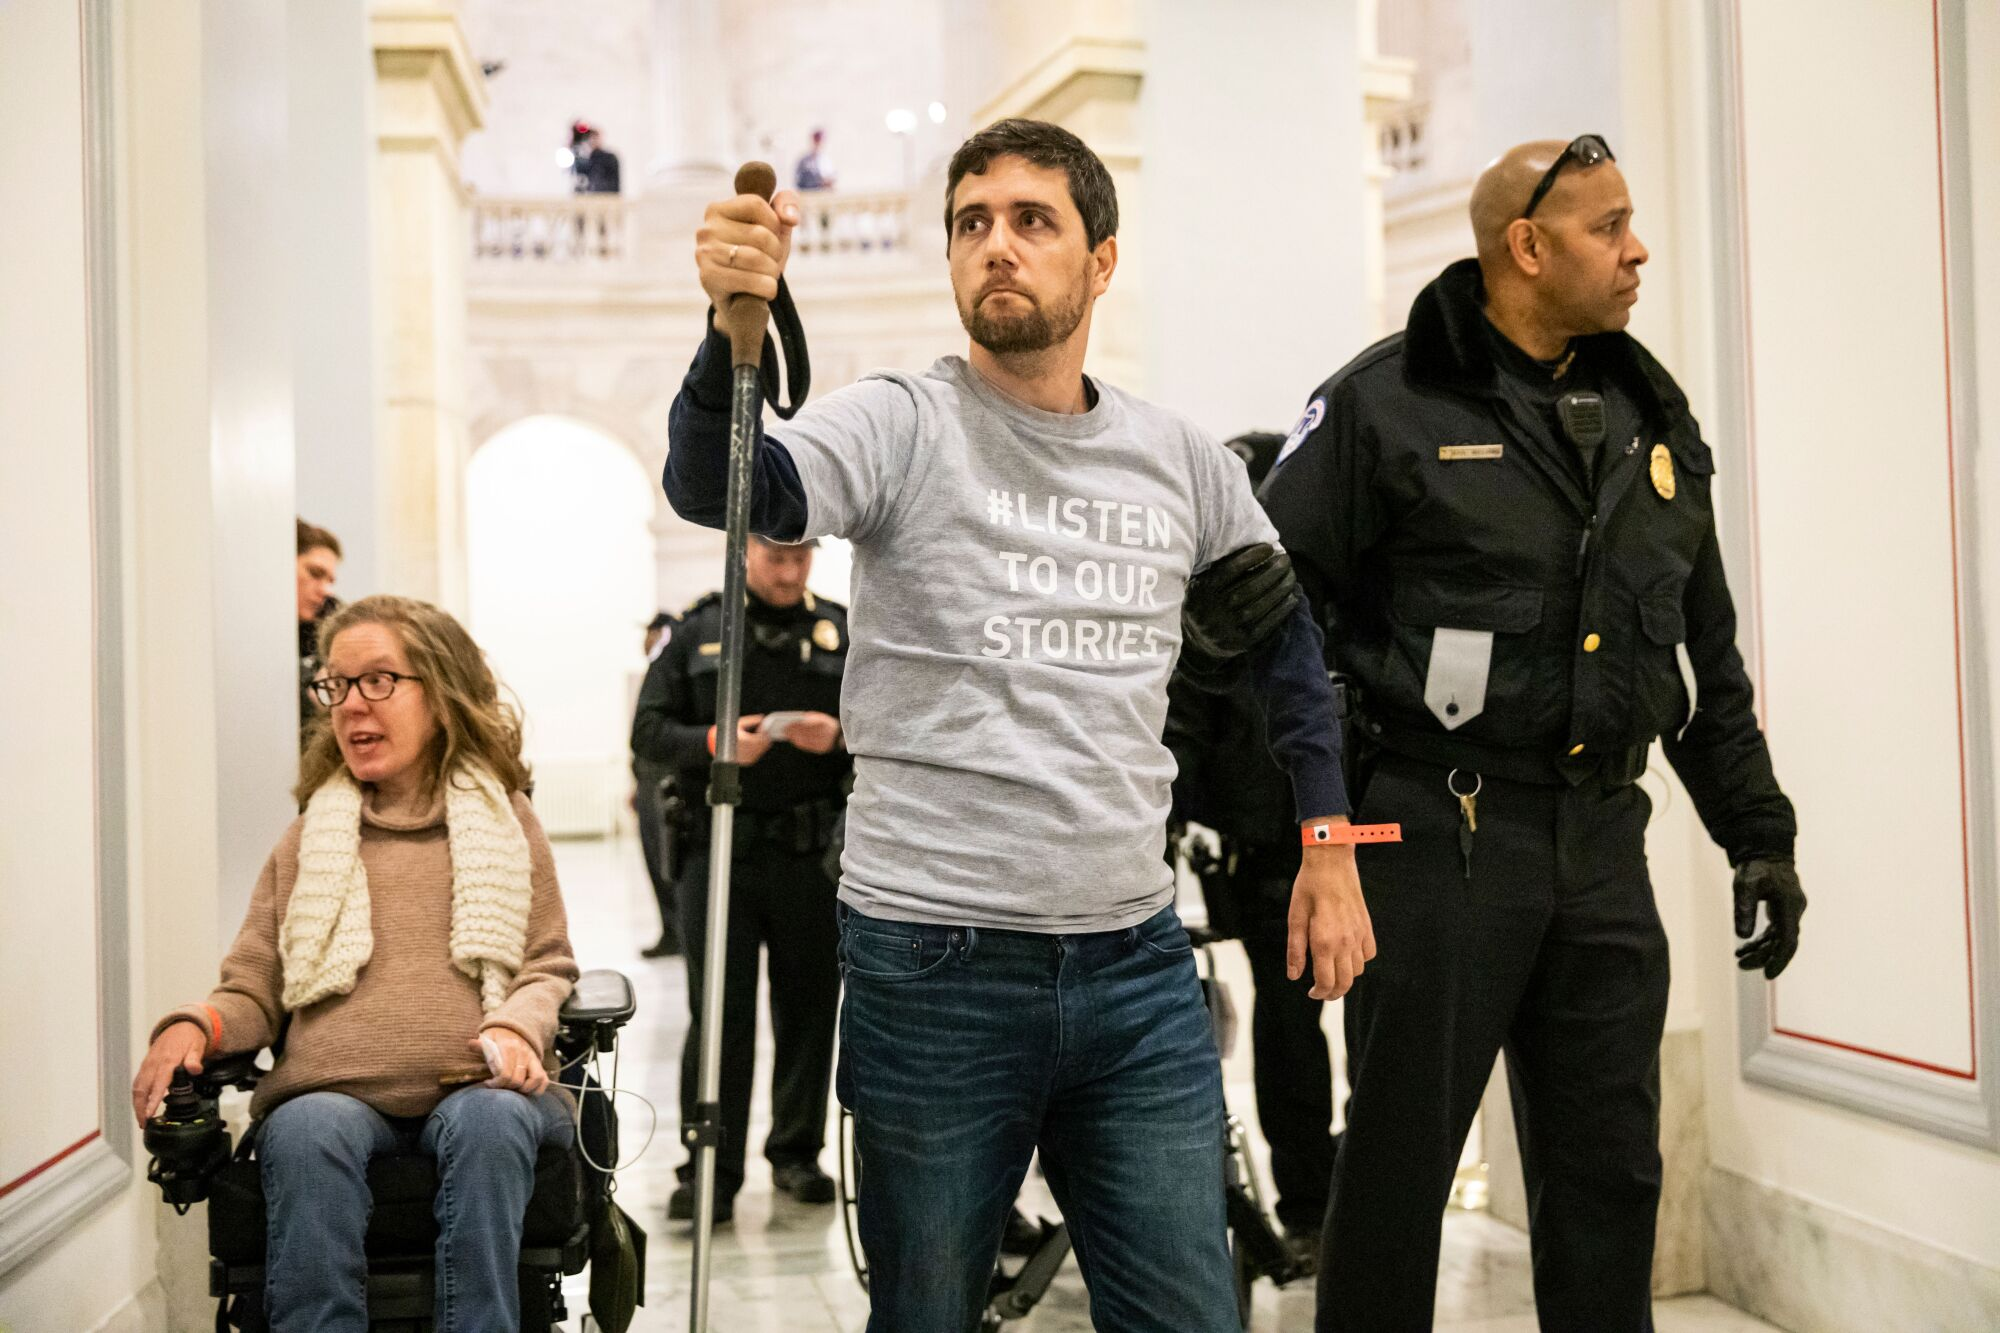 A woman in a wheelchair, a man walking with a hiking pole and several security officers.